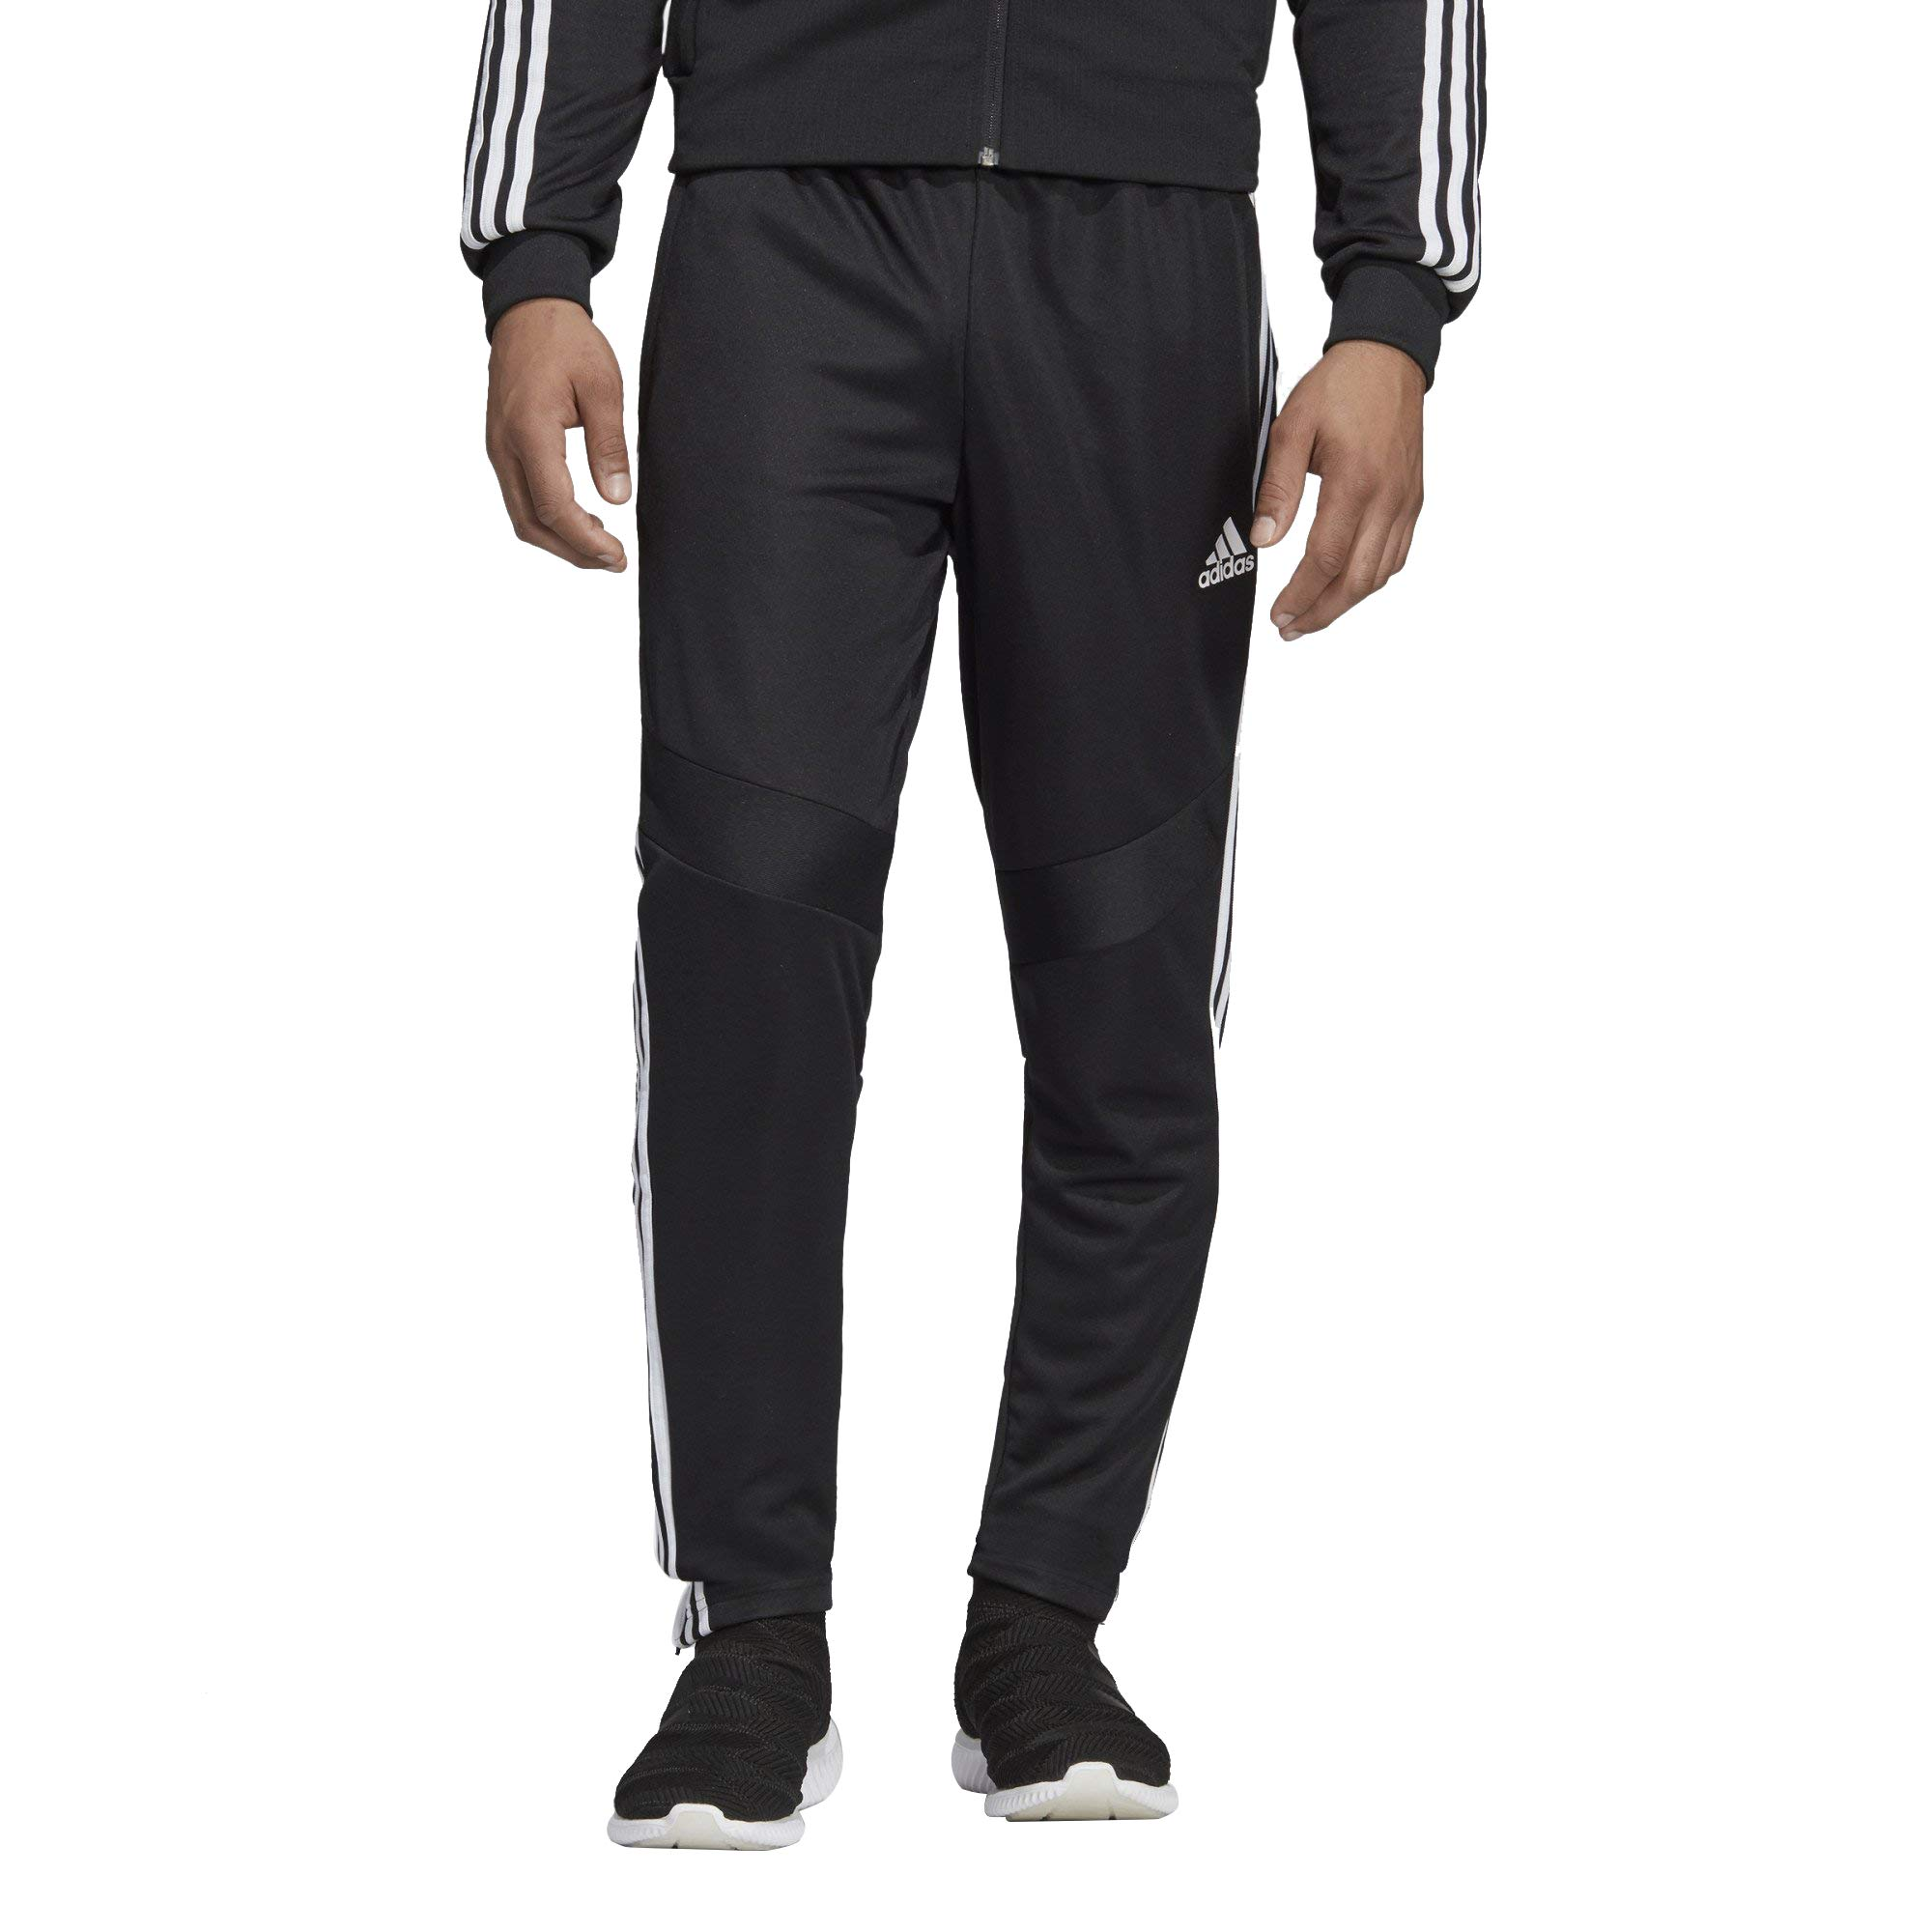 adidas Men's Tiro '19 Pants, Black/White, X-Small